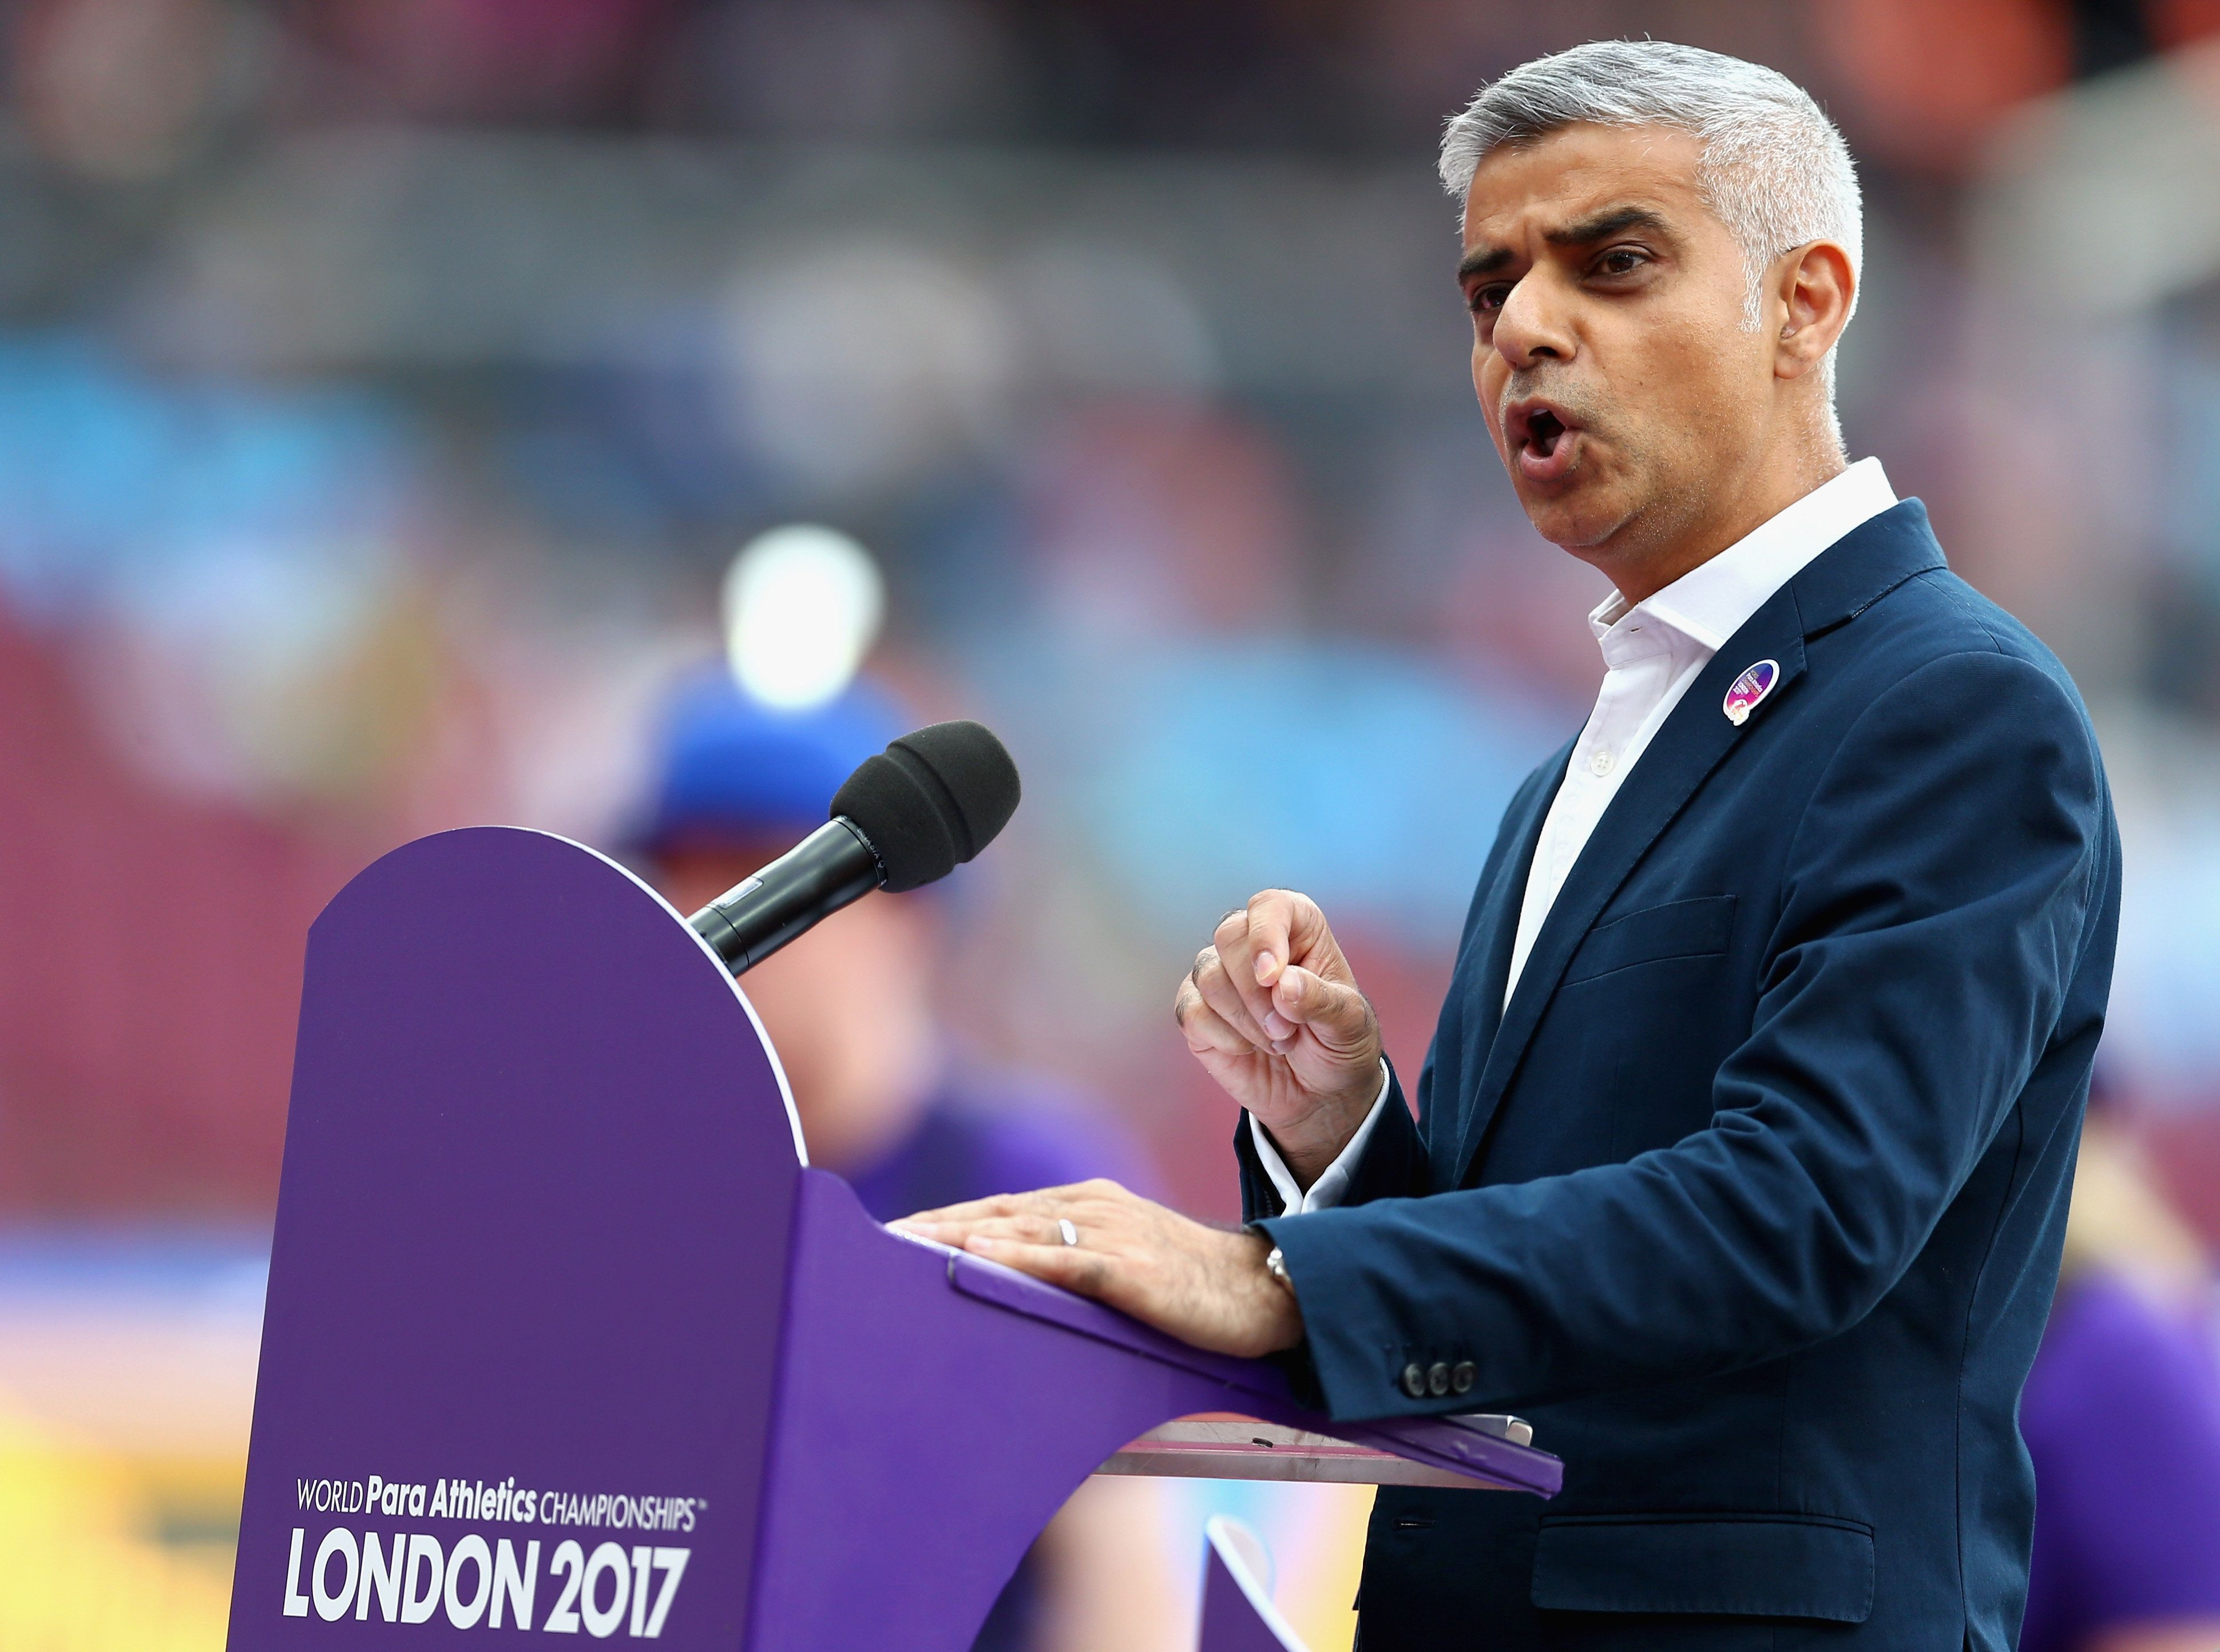 Sadiq Khan said he would not be rolling out the red carpet for Donald